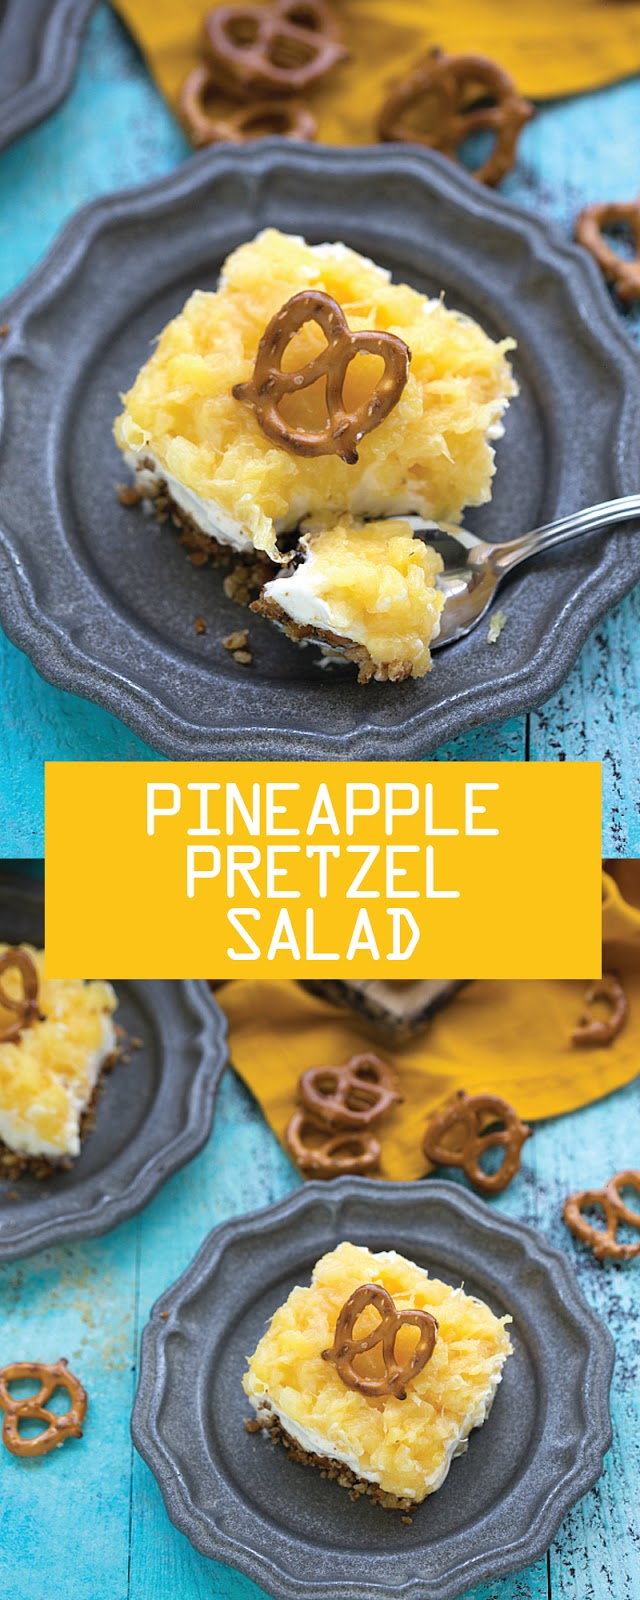 PINEAPPLE PRETZEL SALAD